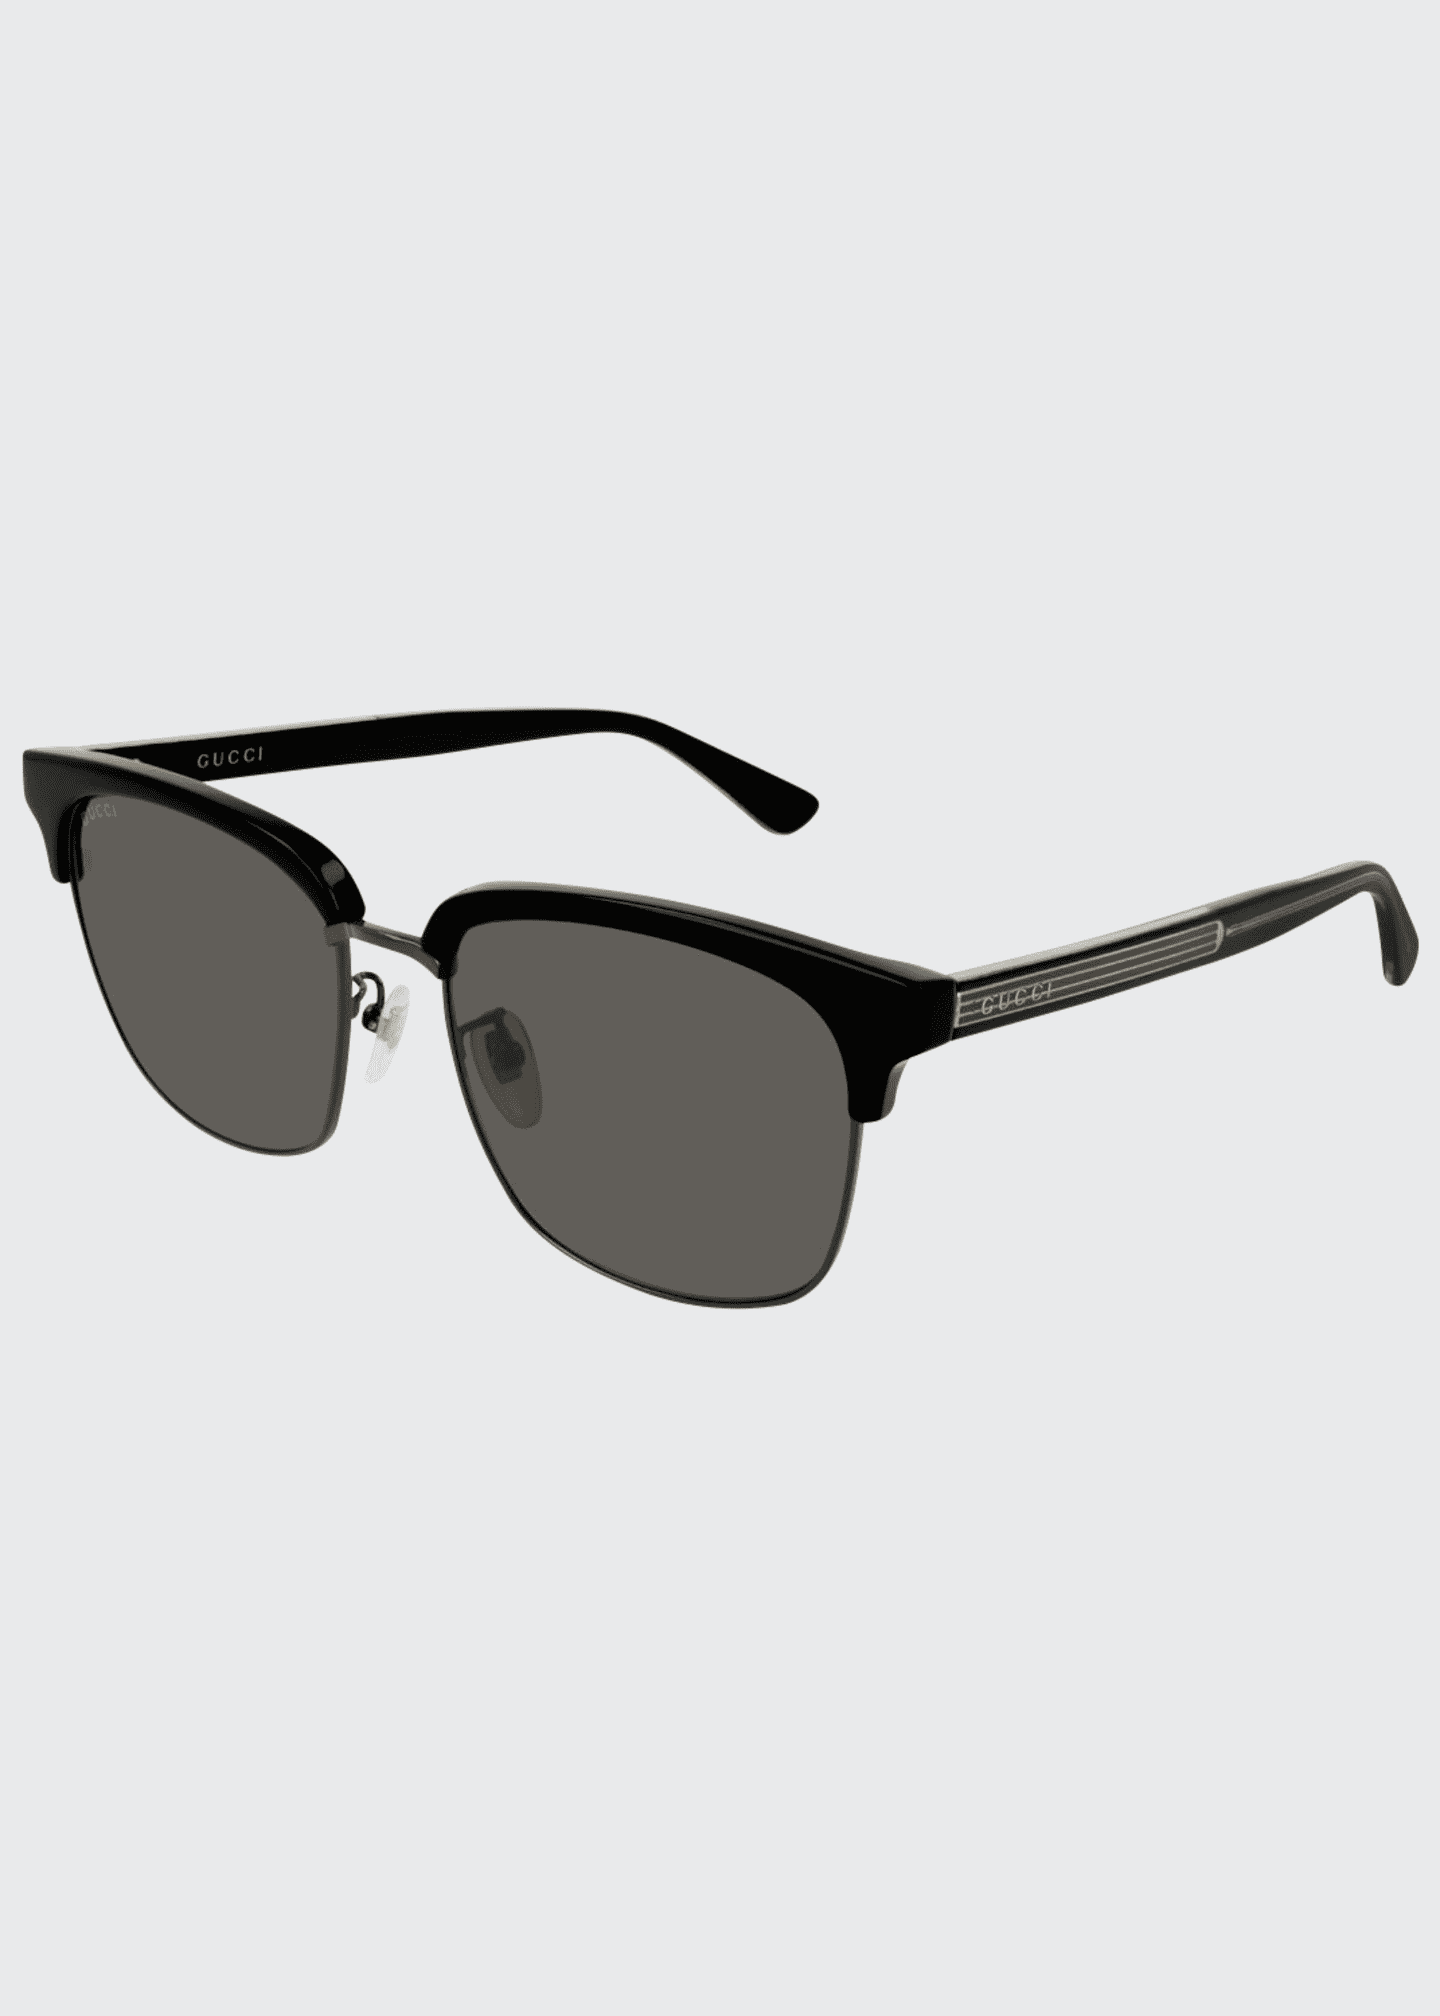 Gucci Men's GG0382S001M Half-Rim Sunglasses